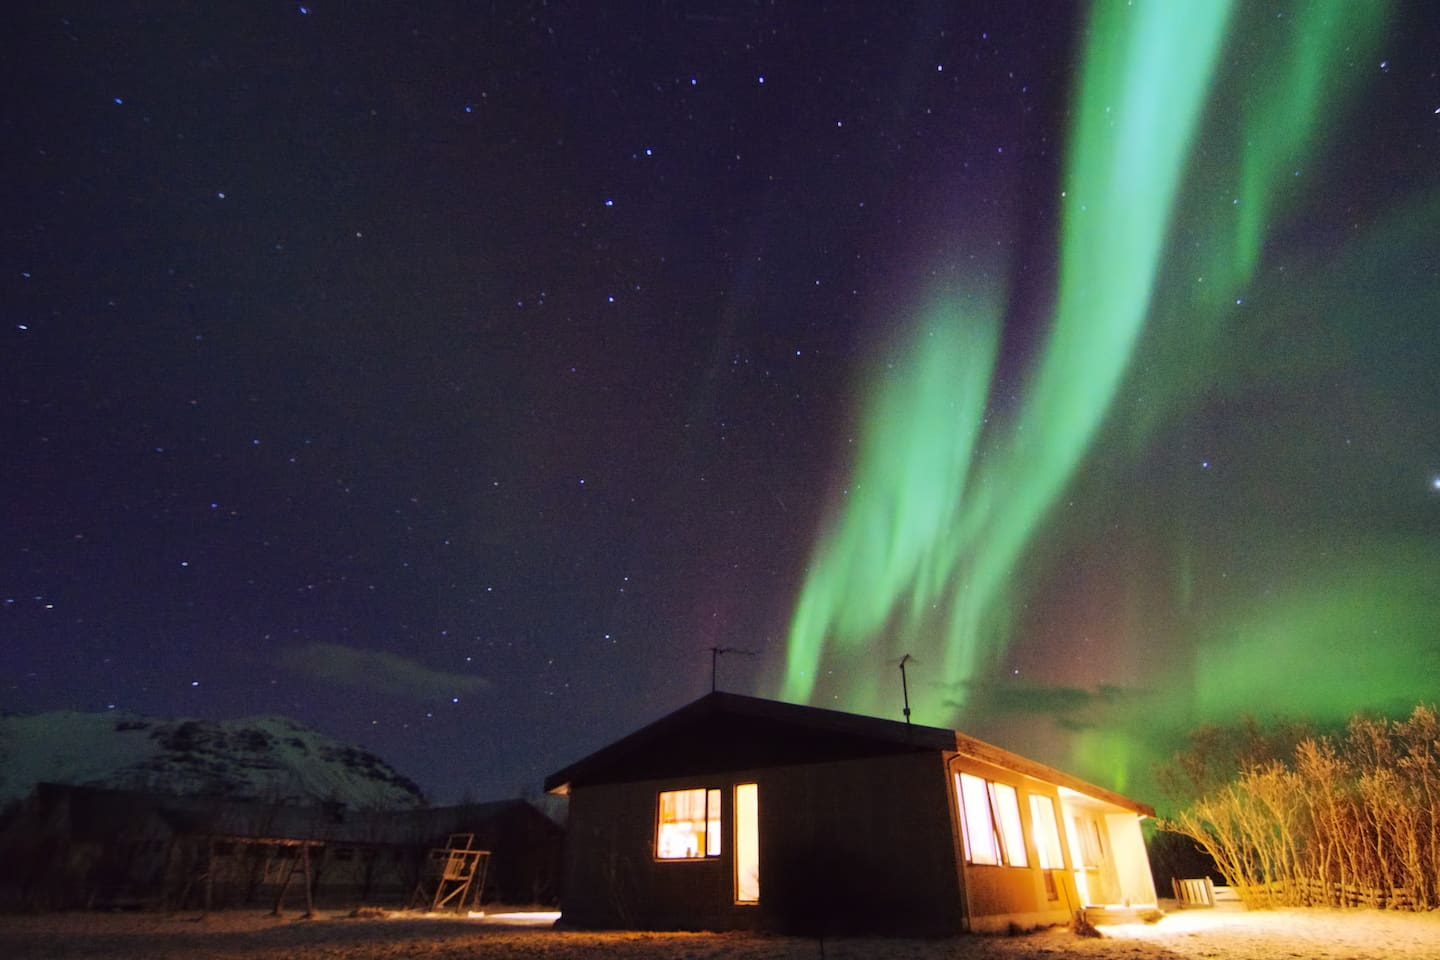 My house and the northern lights